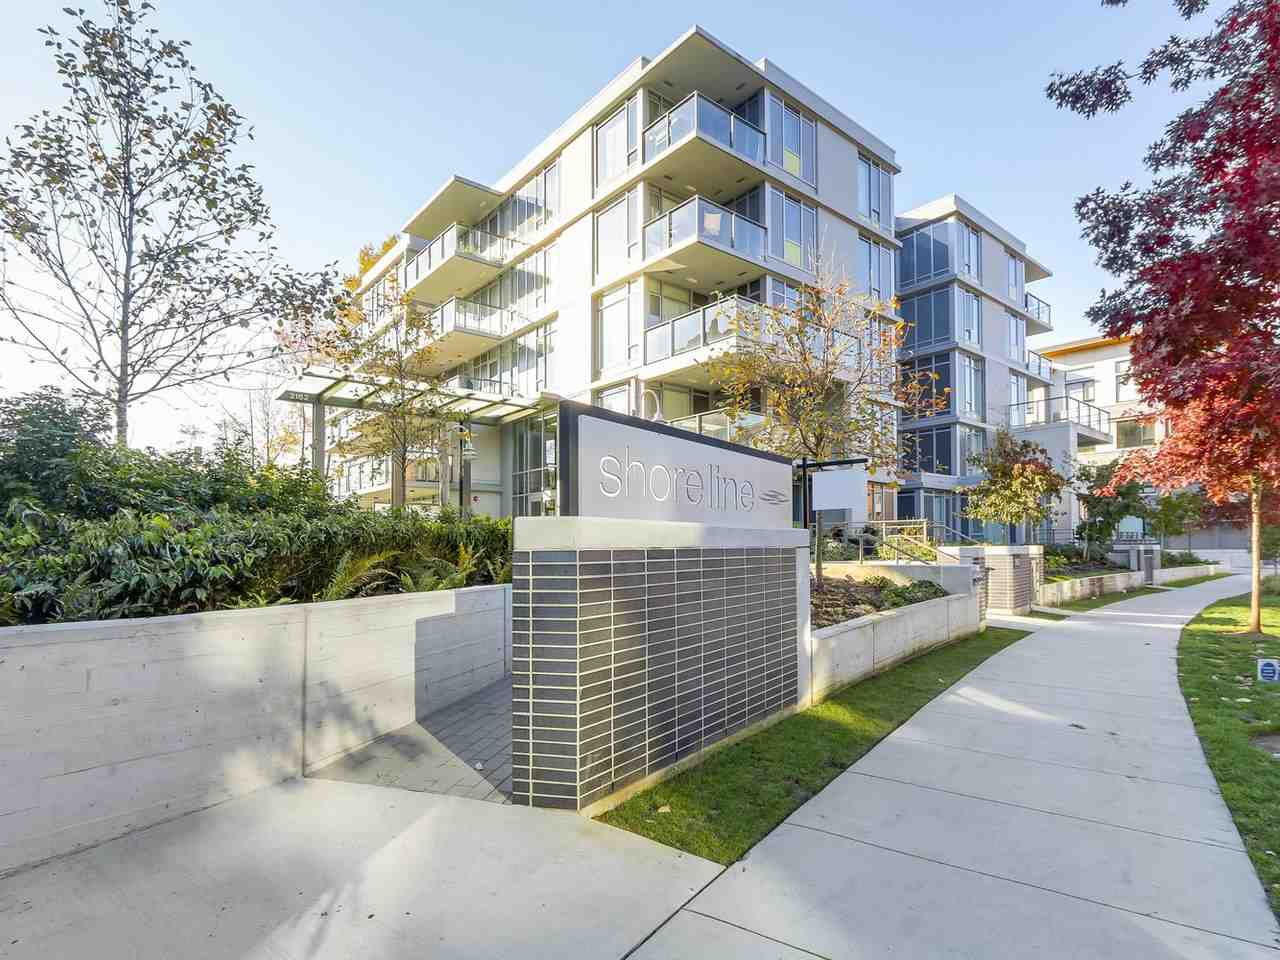 "Main Photo: 402 3162 RIVERWALK Avenue in Vancouver: Champlain Heights Condo for sale in ""SHORELINE"" (Vancouver East)  : MLS® # R2220256"